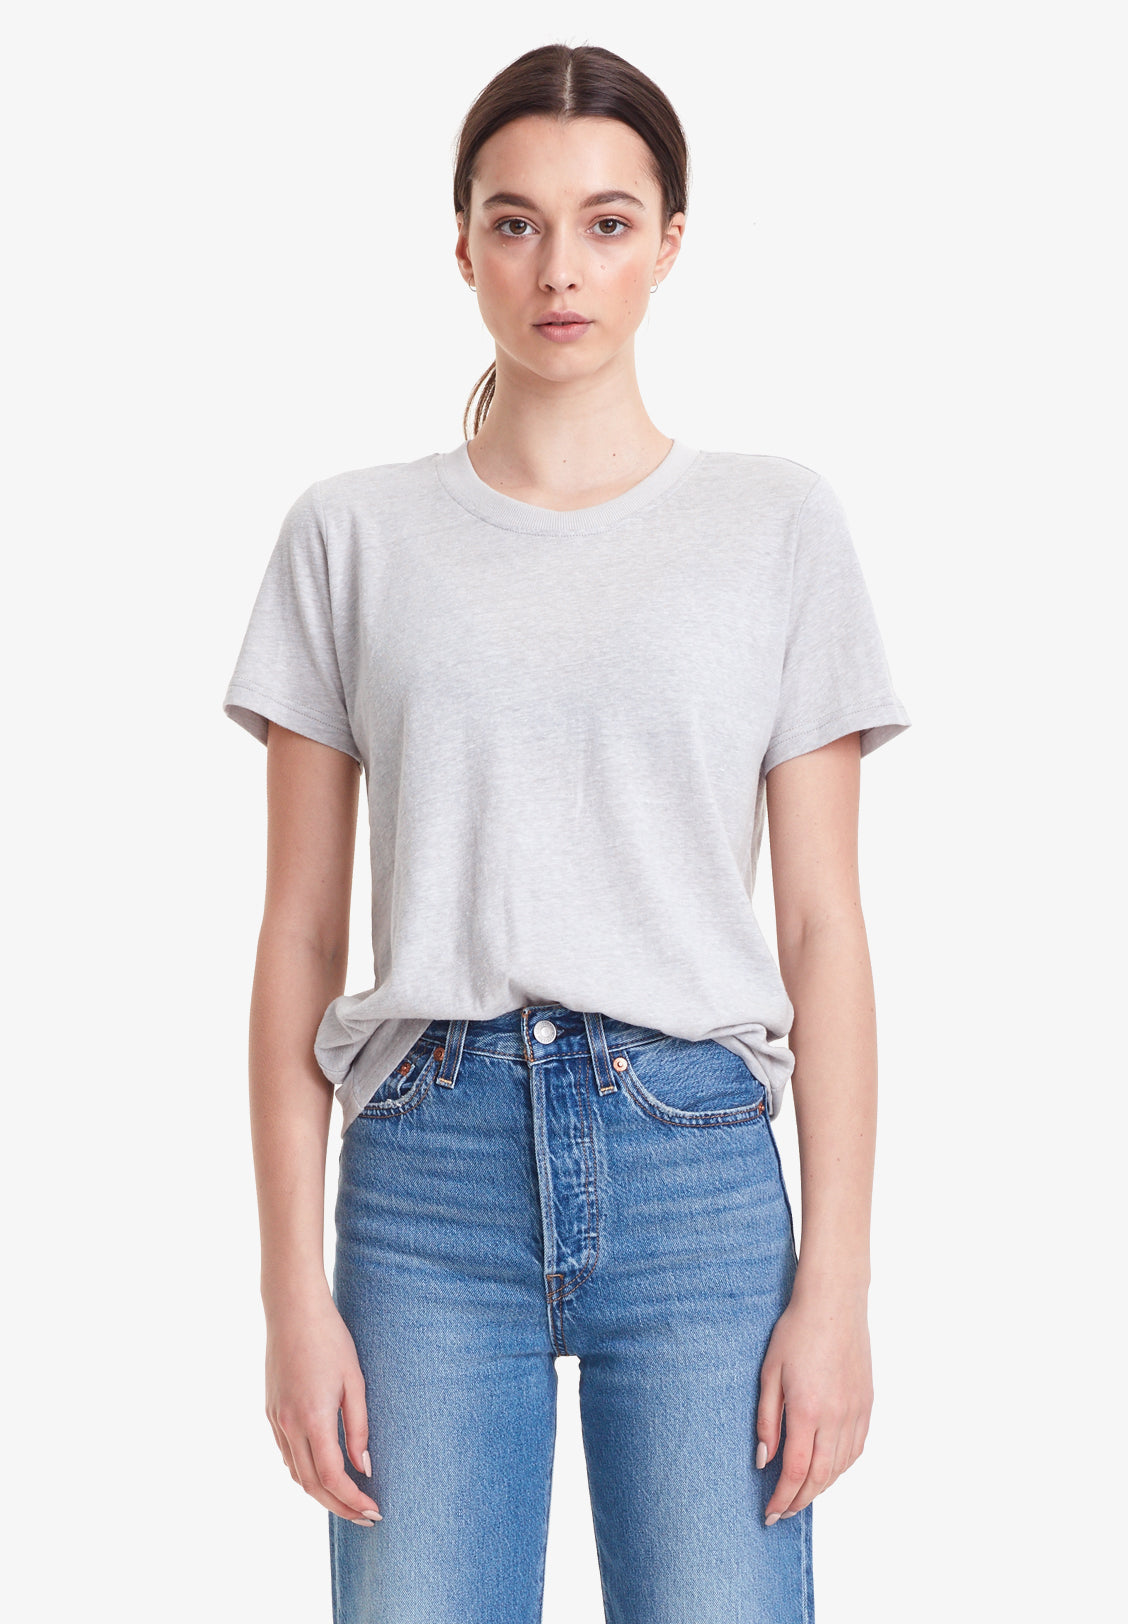 WOMEN'S CREW NECK TEE - RECYCLED COTTON, LIGHT GREY